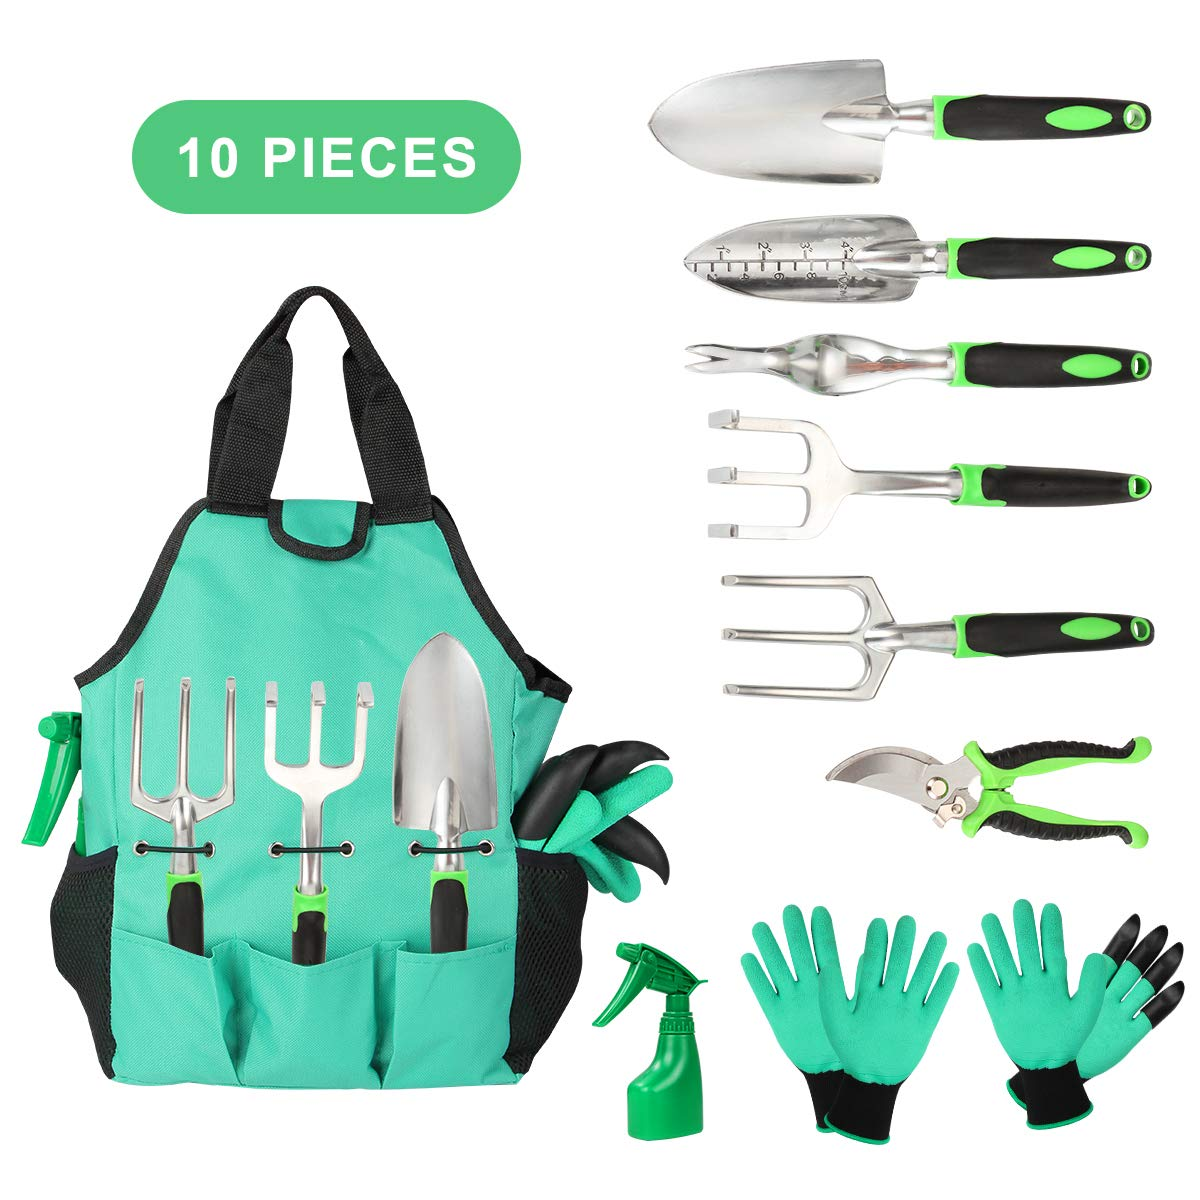 Garden Tools Set 10 Pieces, Gardening Kit with Heavy Duty Aluminum Hand Tool and Digging Claw Gardening Gloves, Vegetable Herb Garden Hand Tool, Outdoor Tools Set Gifts for Men Women by Aladom